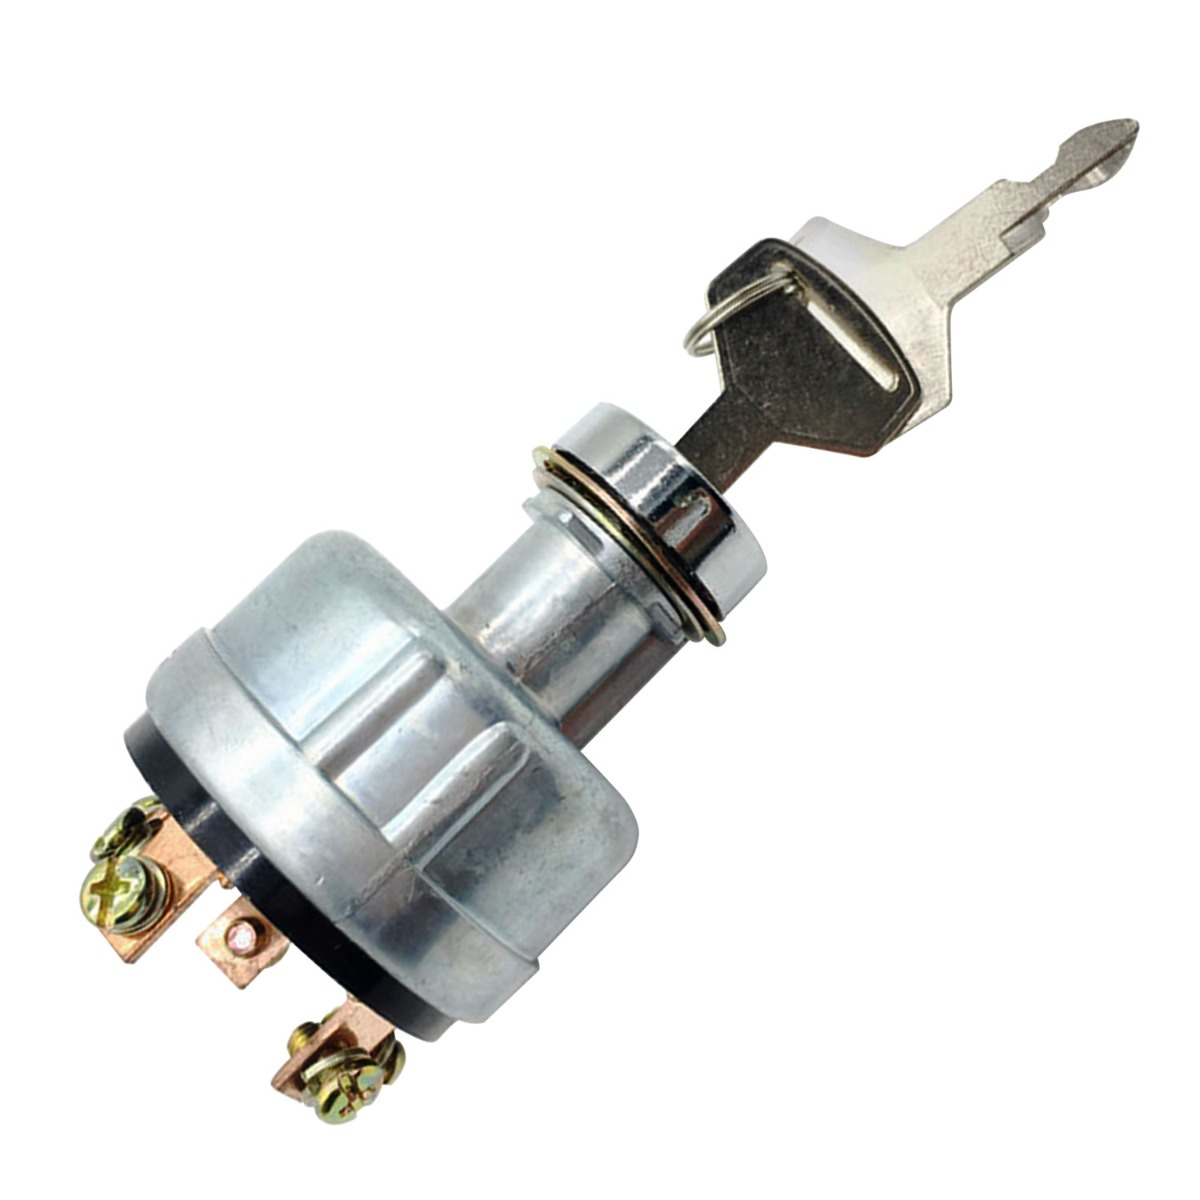 Ignition Switch YN50S00002F1 with 2 Key 4 Position 6 Terminal Wire Digger Compatible with Ford 3400